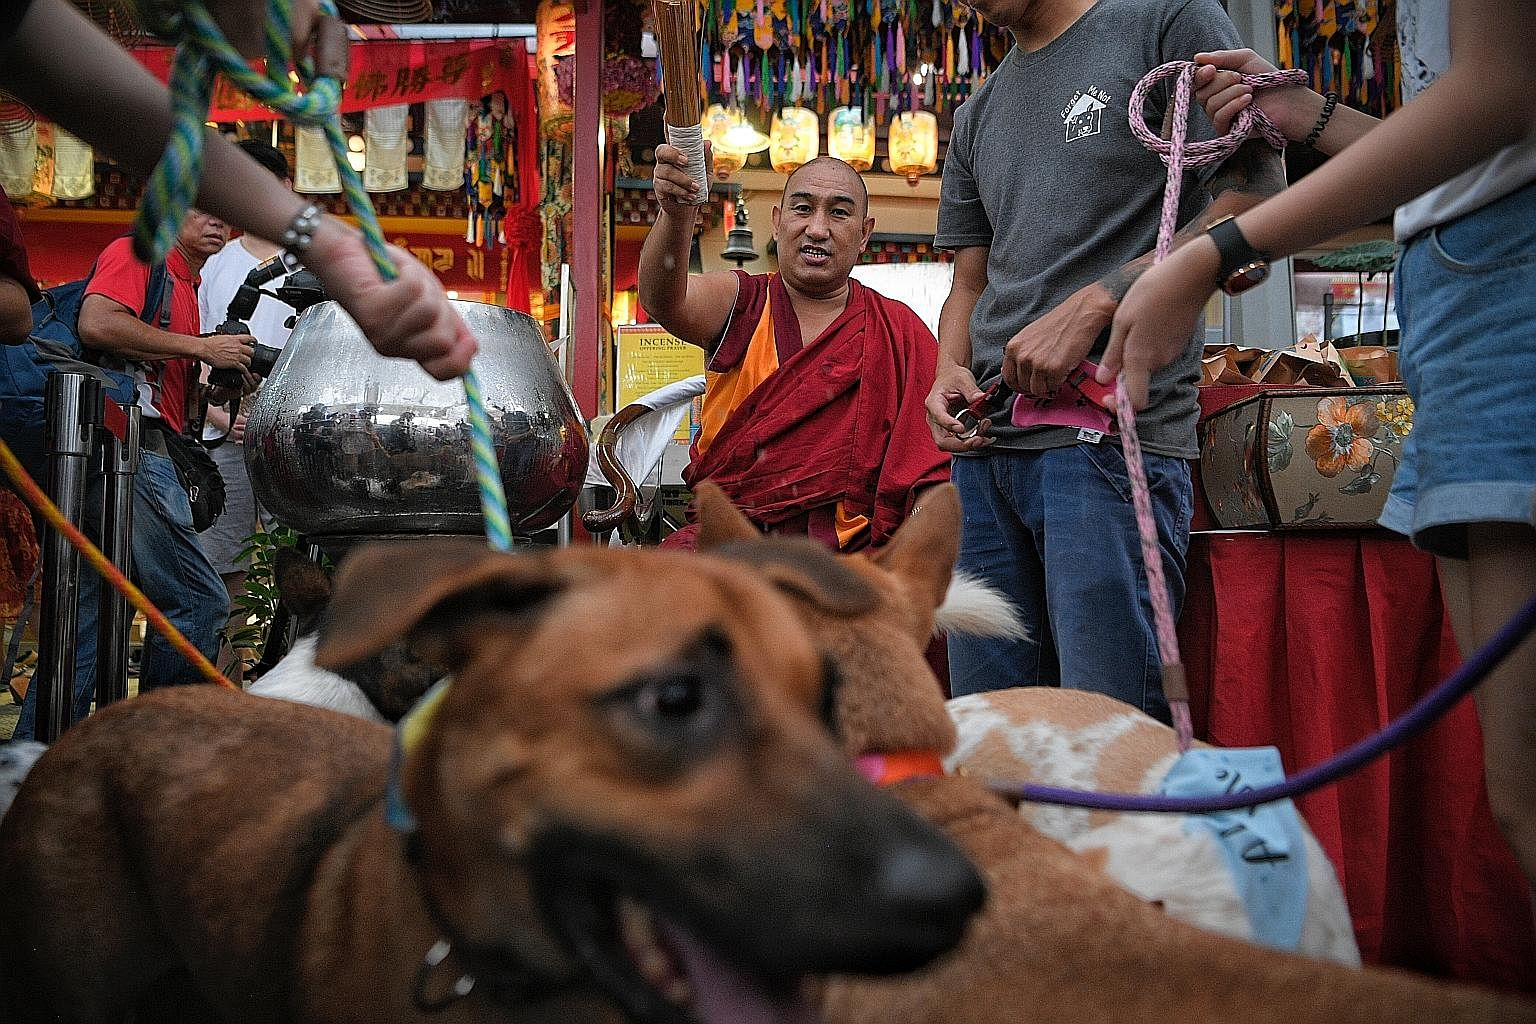 Buddhists traditionally release animals on Vesak Day but, for the first time, Thekchen Choling, a Tibetan Buddhist temple in Beatty Lane in Jalan Besar, decided to mark it by holding an adoption drive for strays, in collaboration with four animal wel